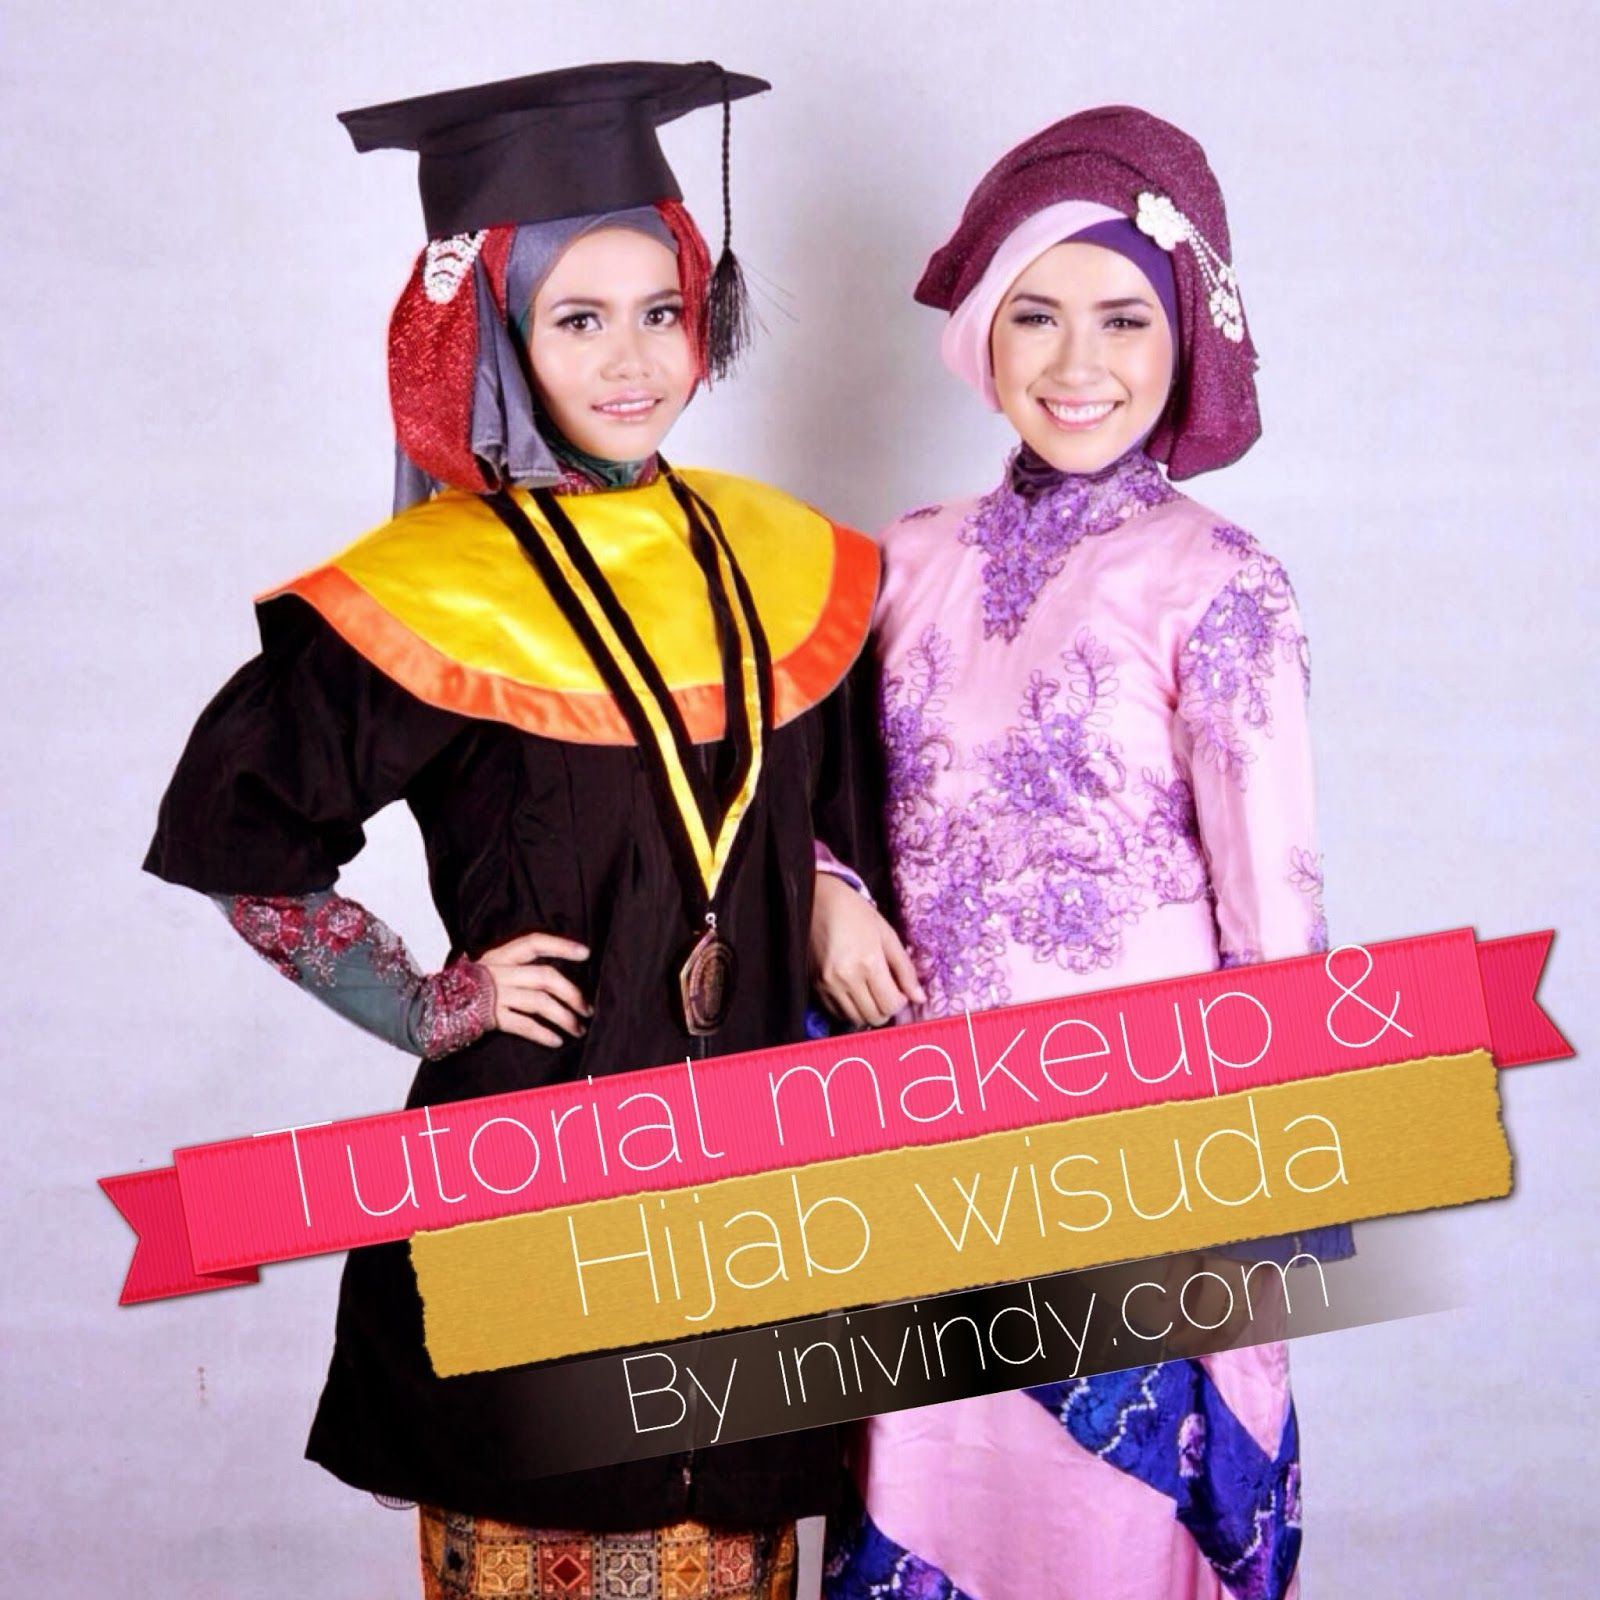 Make Up For Wisuda Gt Makeup Pinterest Make Up For And Make Up